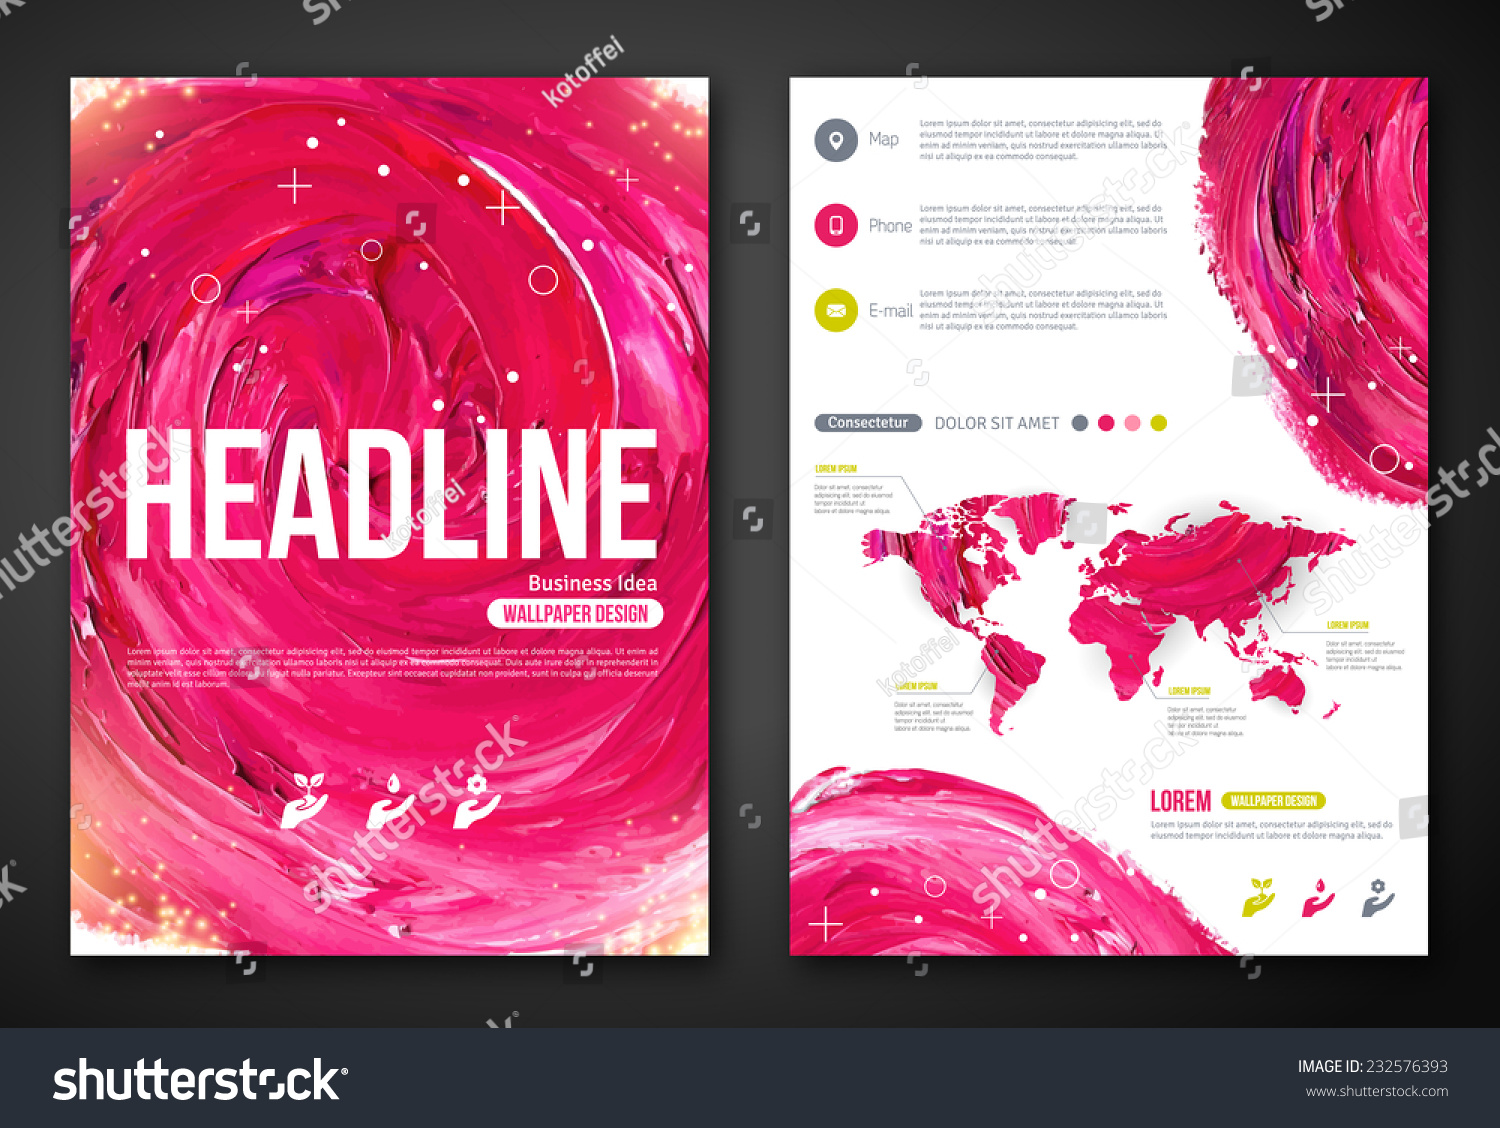 business poster flyer template paint abstract stock vector business poster or flyer template paint abstract pink background vector illustration typographic template